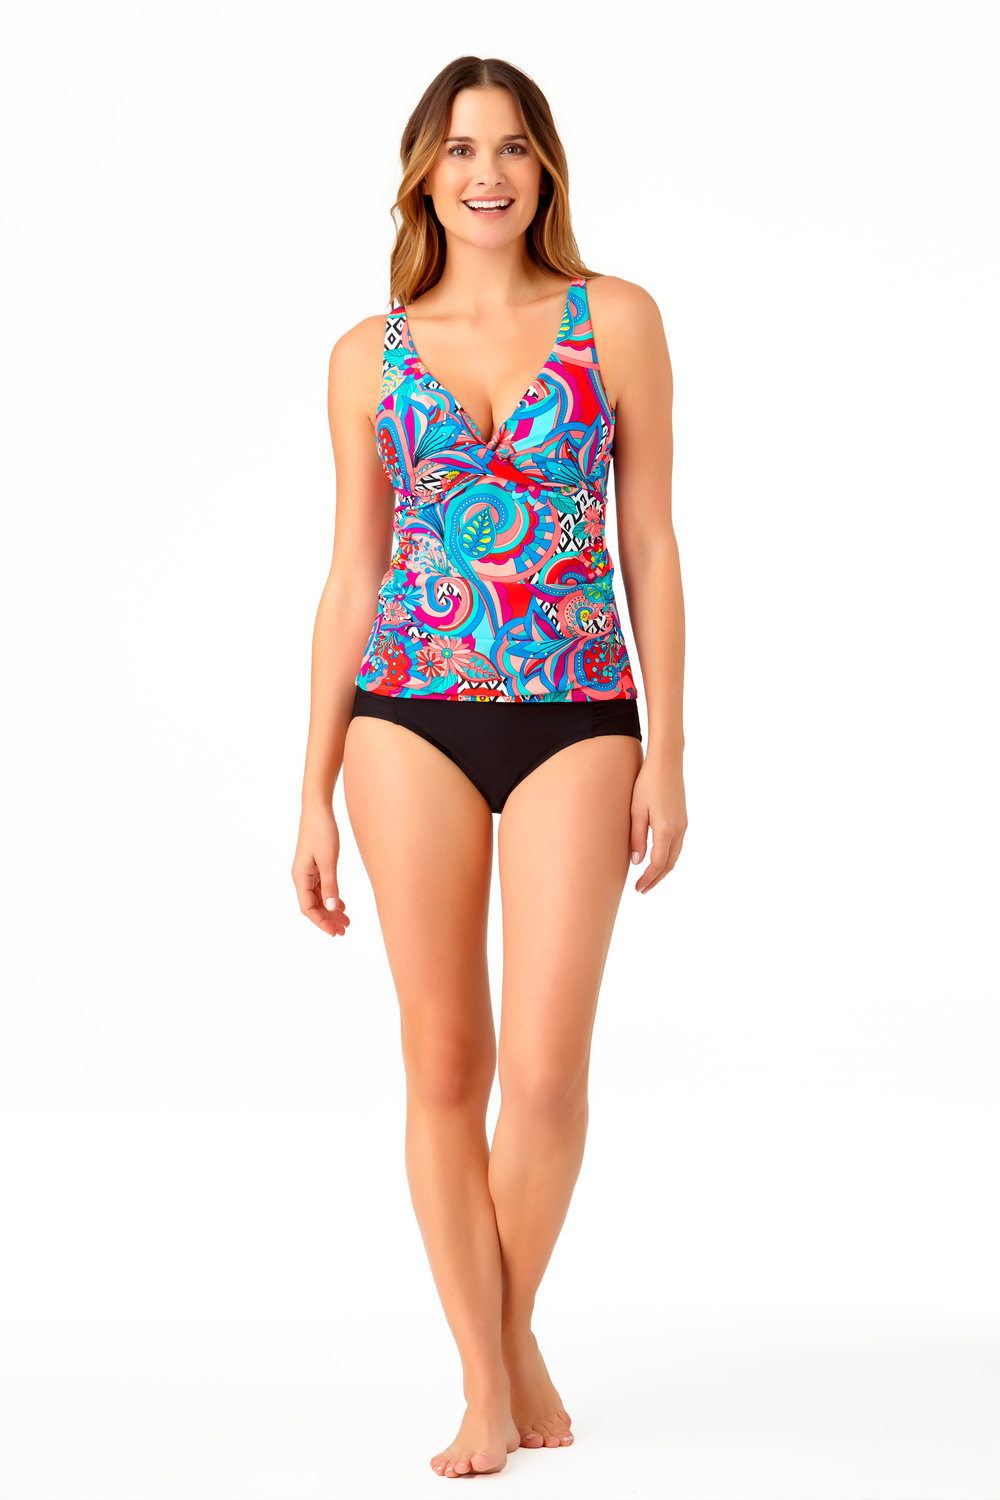 STYLE # CTL27414T / CTL27500B - Copacabana Tankini TopBUY NOW ON WALMARTSolid High Waist BottomBUY NOW ON WALMART